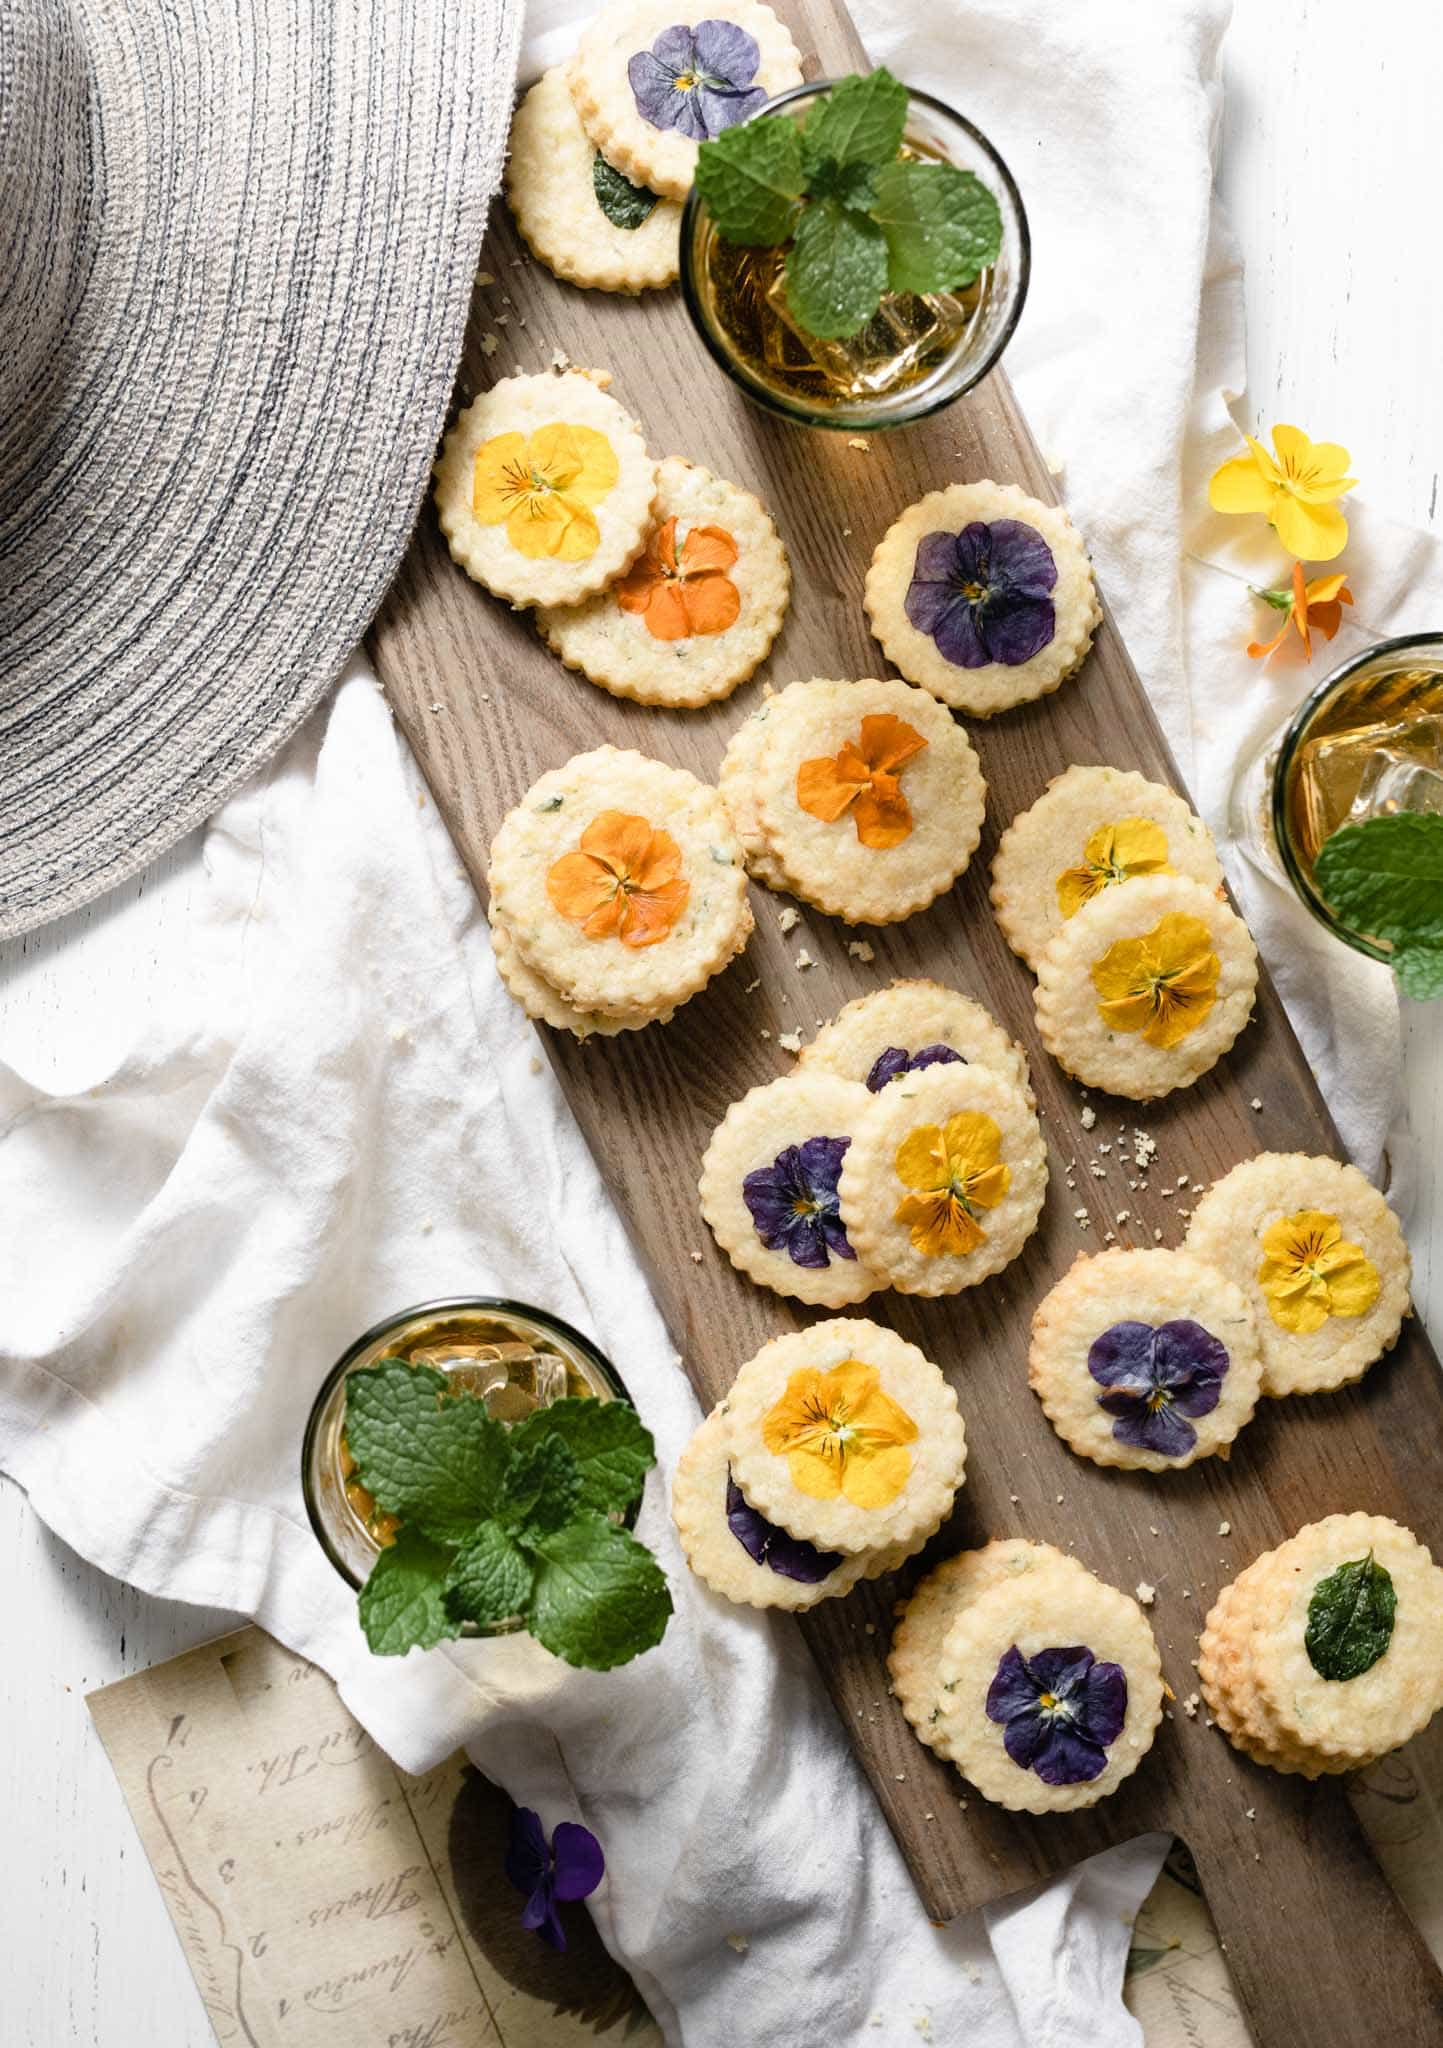 Summer cookie recipe with edible flowers.